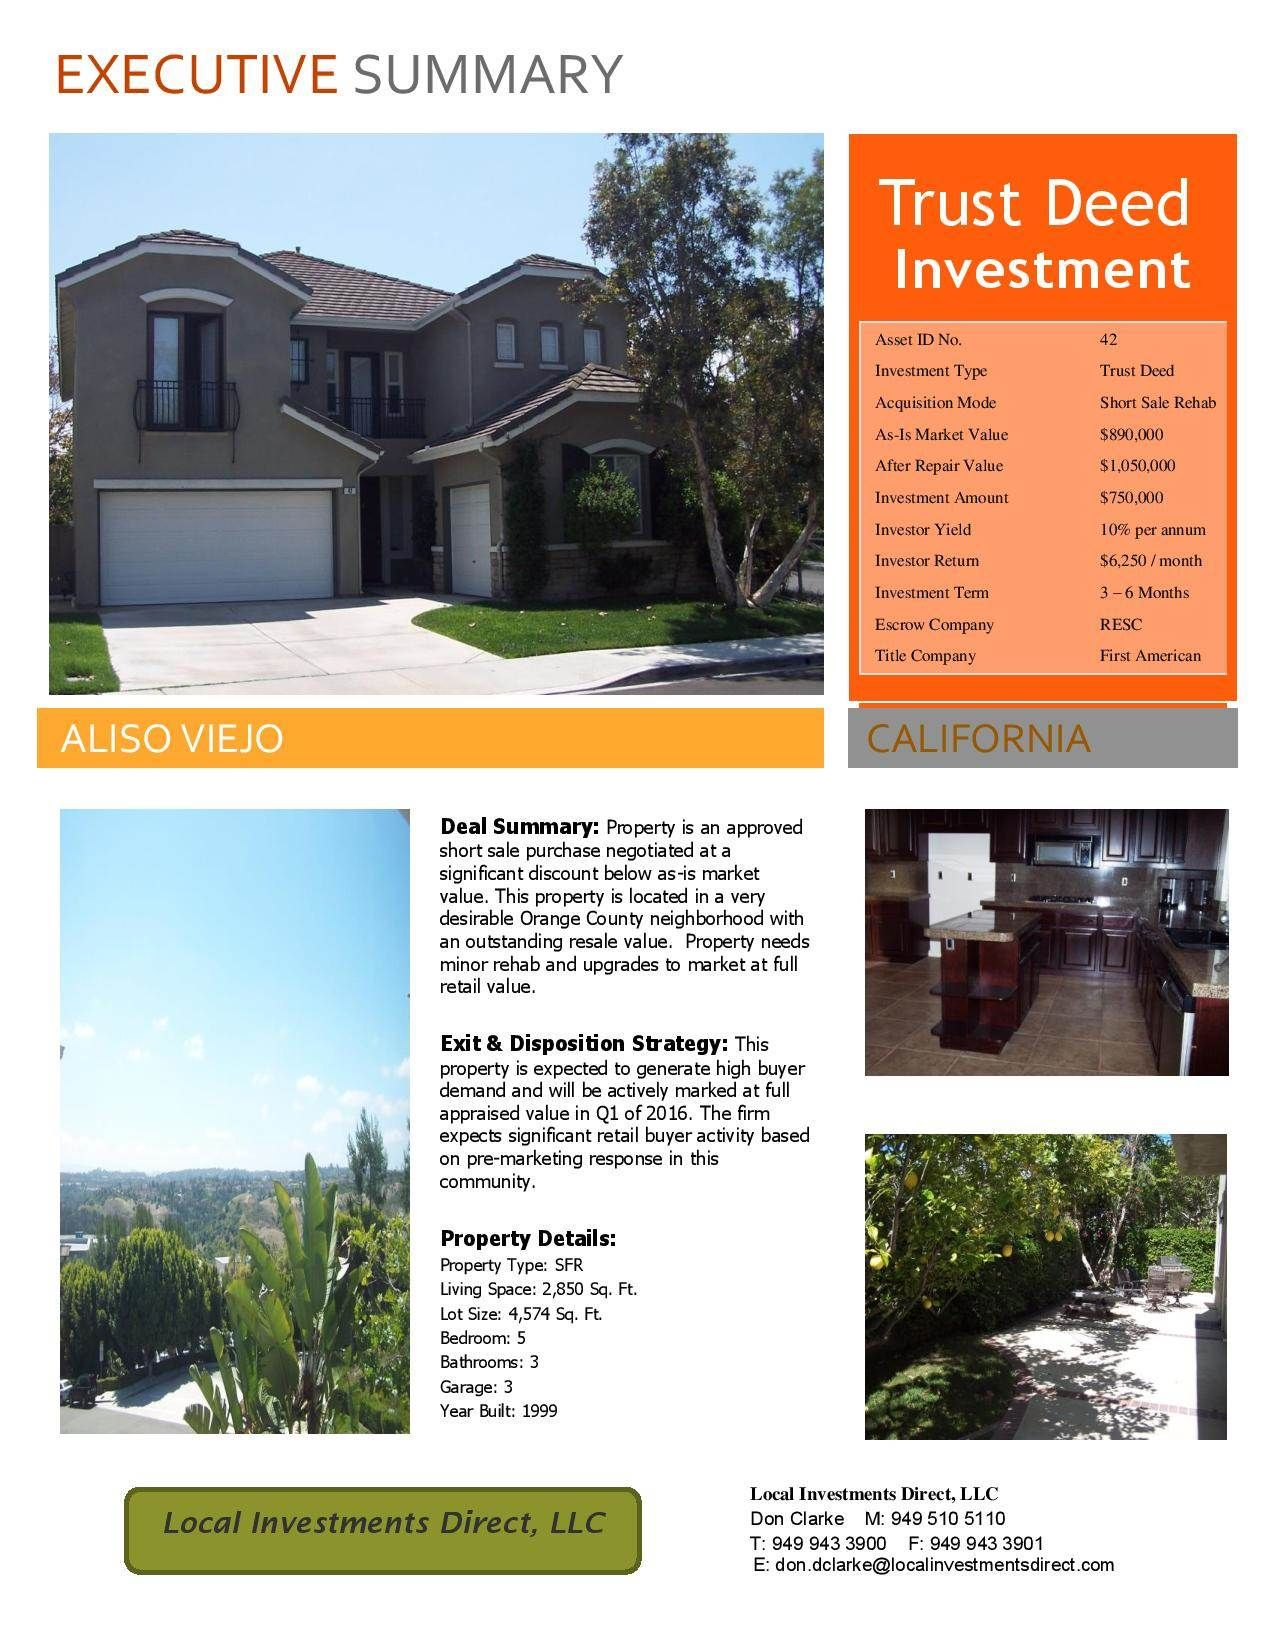 Check out this wholesale deal in Aliso Viejo, California for only $750000 on FlipNerd.com!